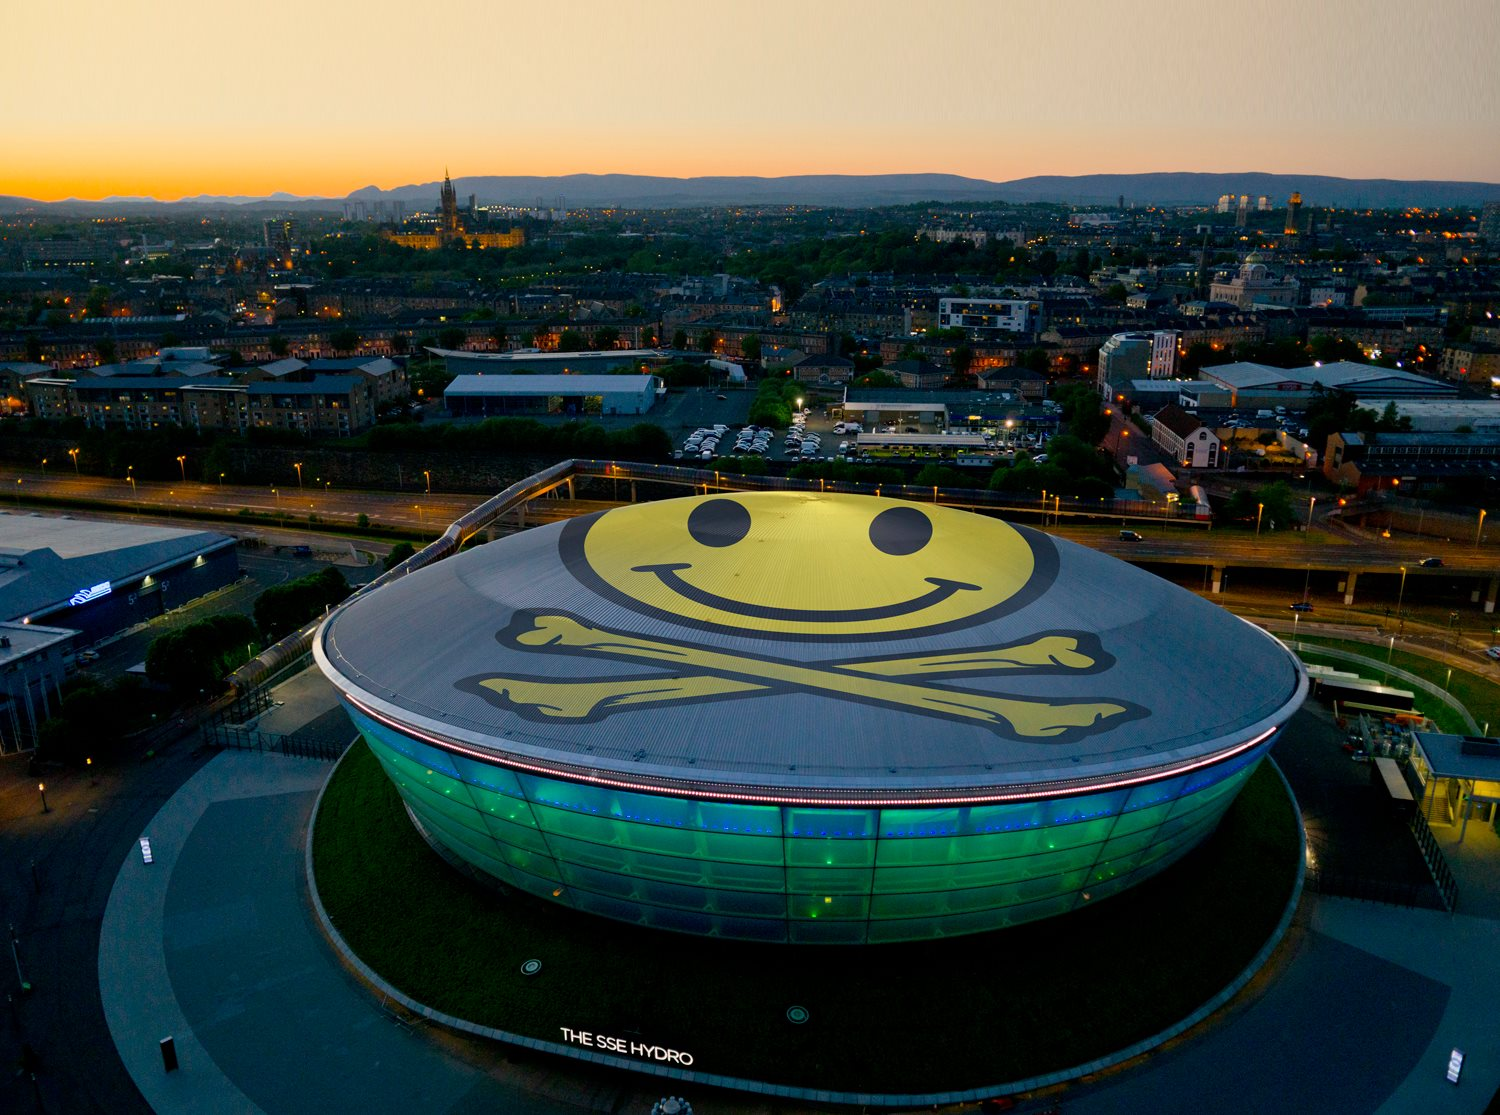 Image result for fatboy slim sse hydro glasgow 2018